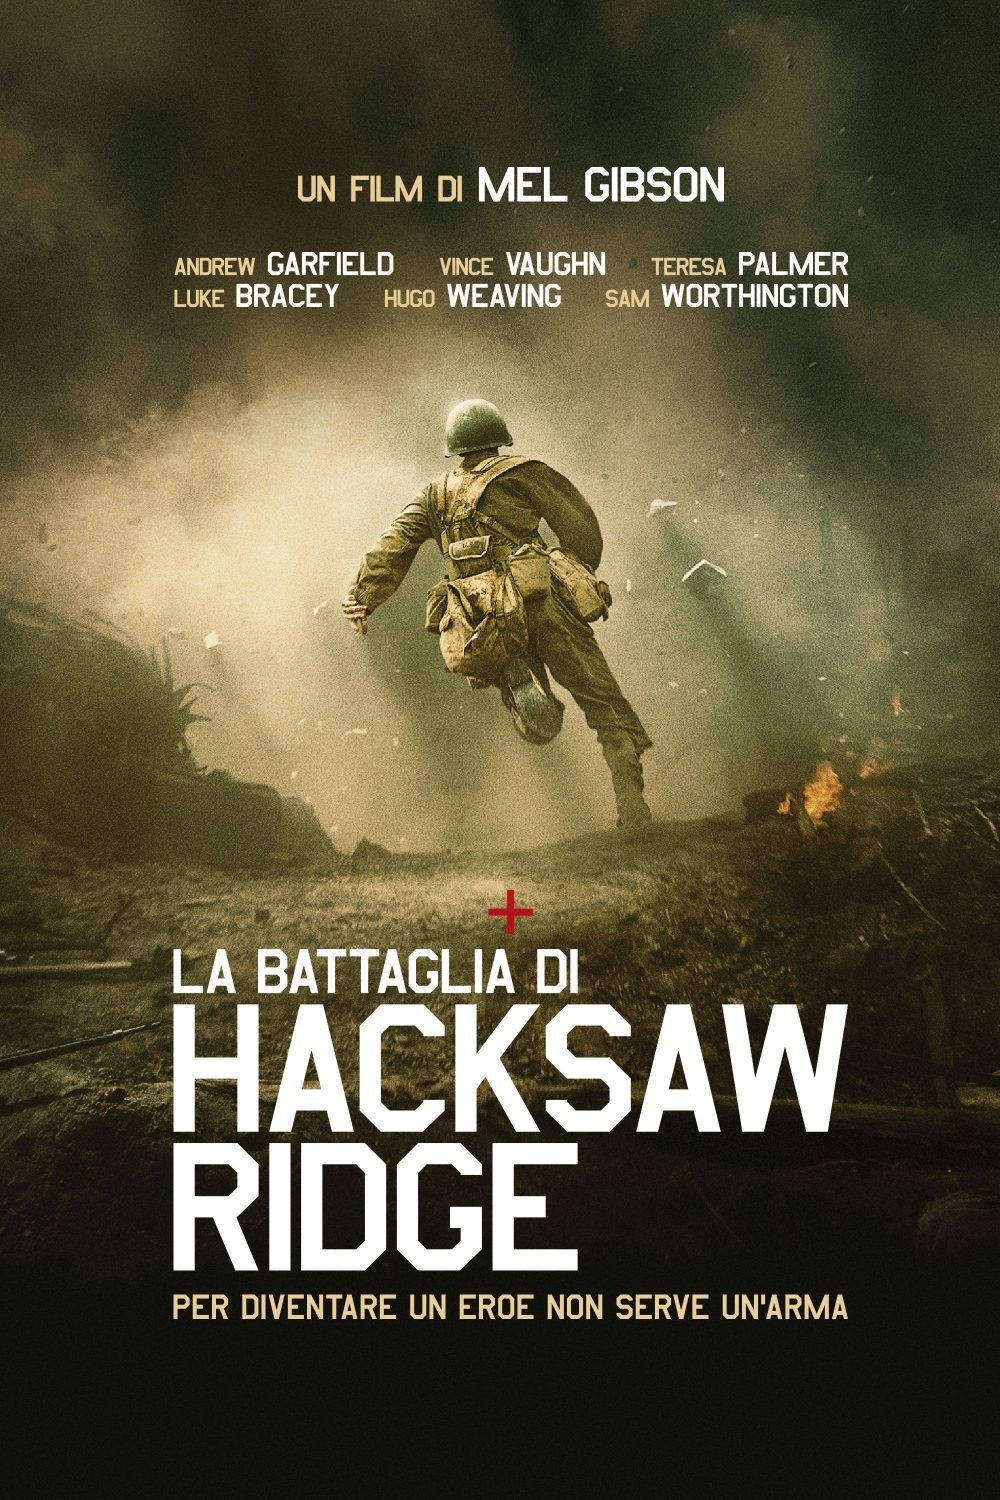 La Battaglia Di Hacksaw Ridge Streaming Film E Serie Tv In Altadefinizione Hd Andrew Garfield Braveheart Vince Vaughn